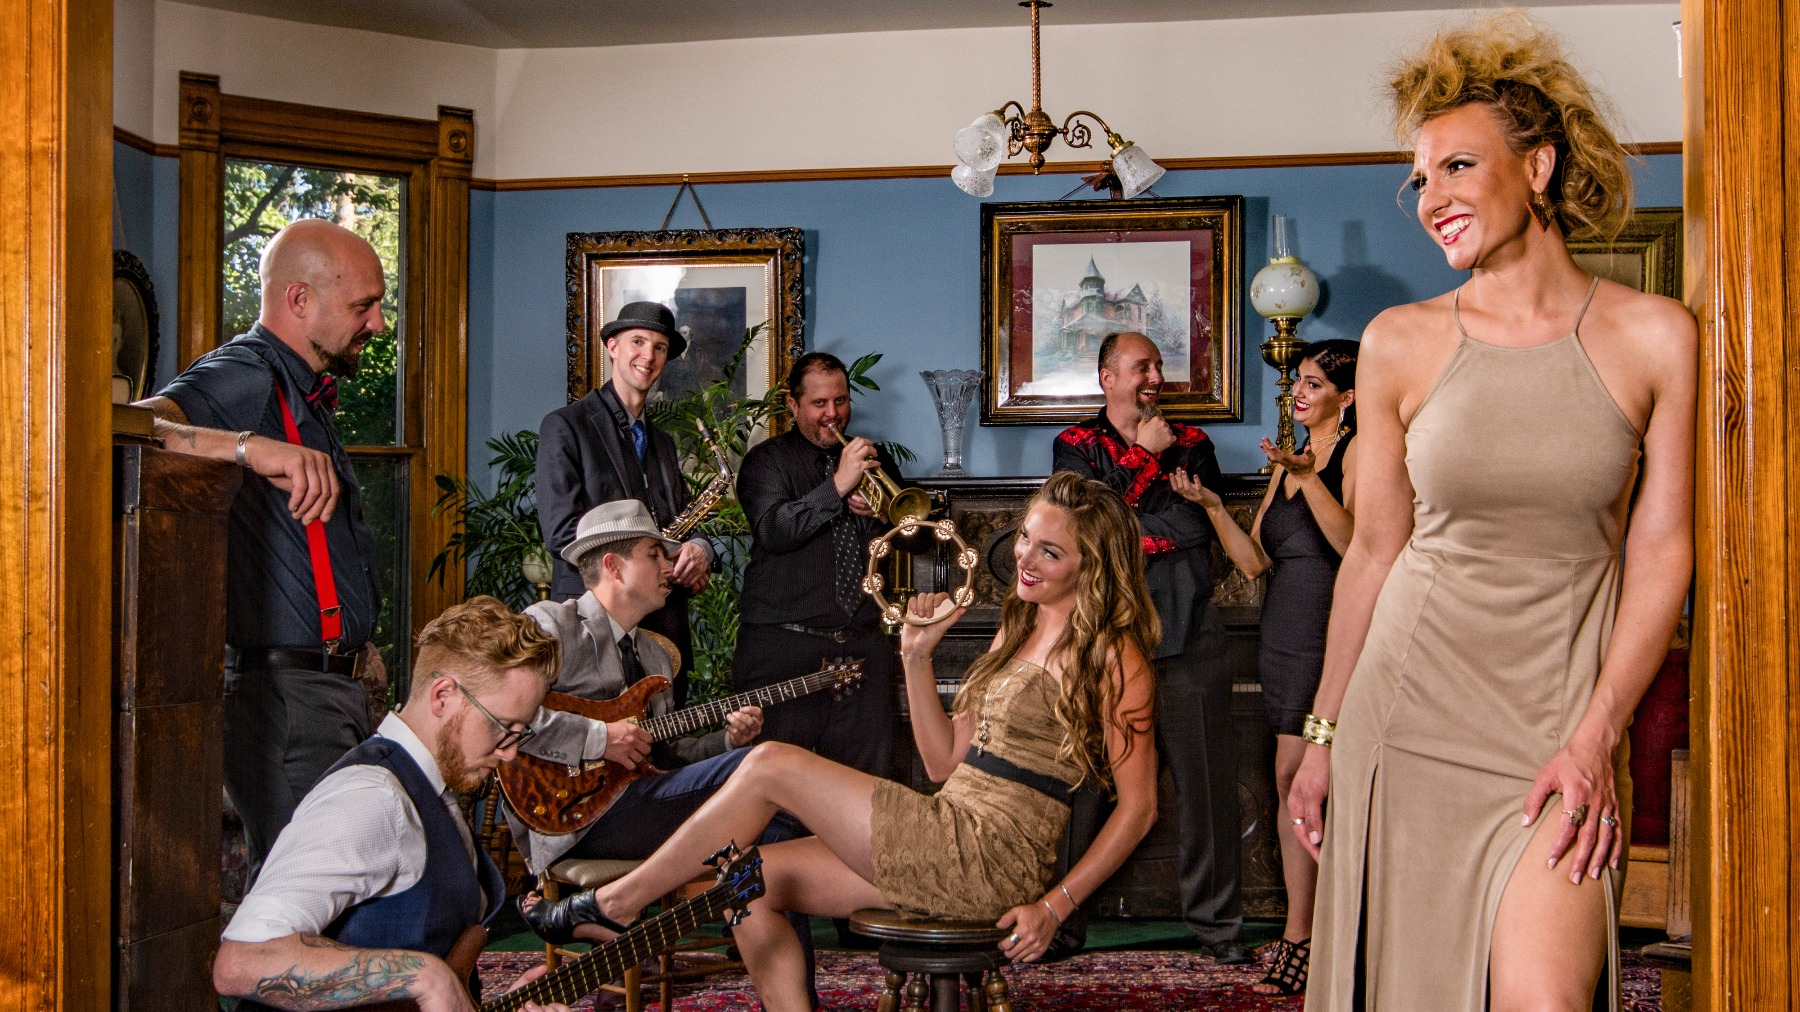 Paige and The People's Band: Leap Day Bash